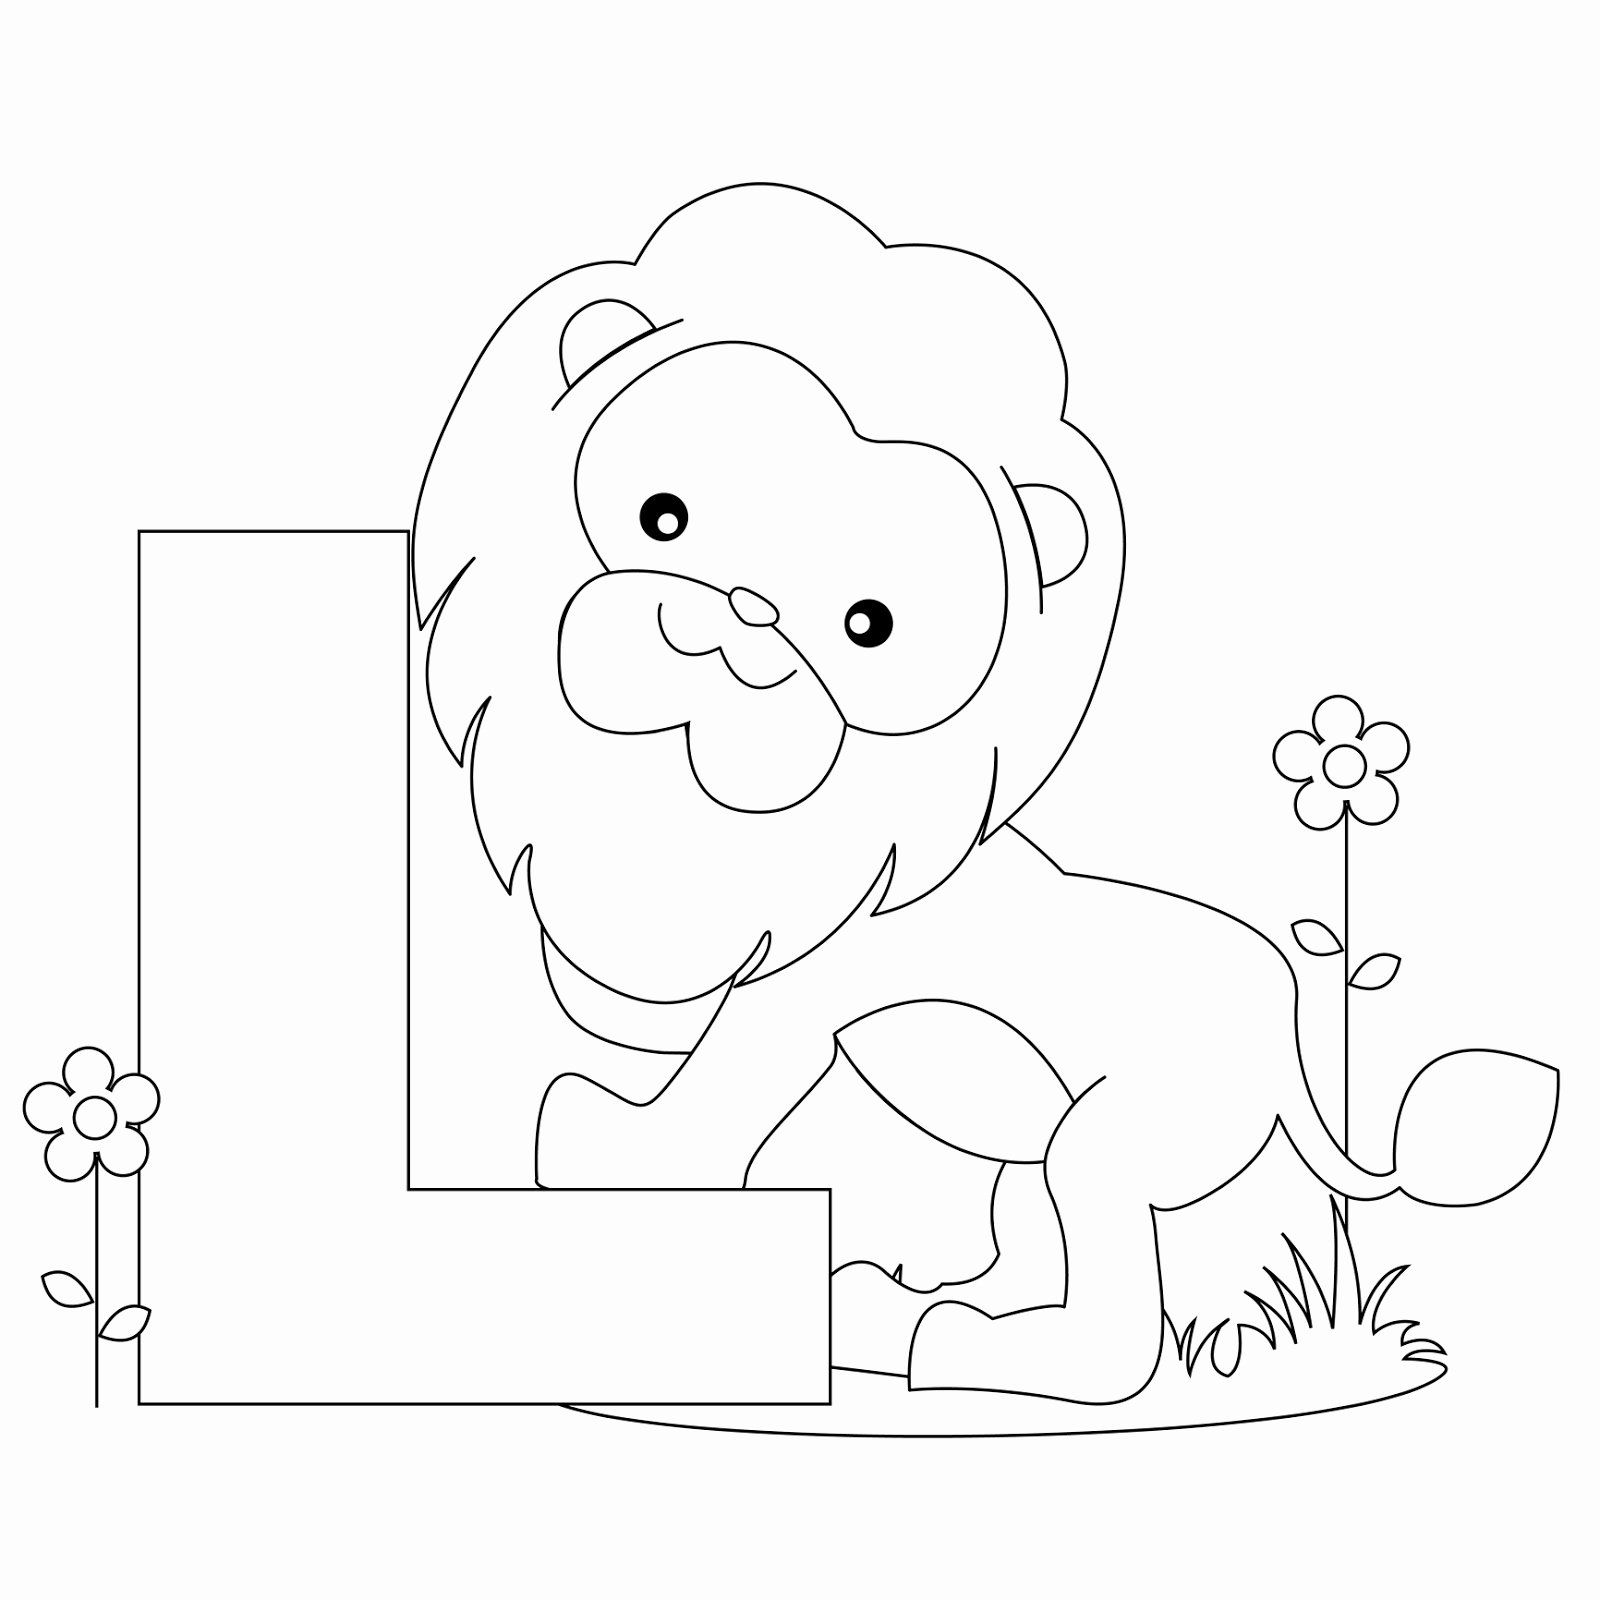 Abc Animal Coloring Pages Best Of Animal Alphabet Letter L